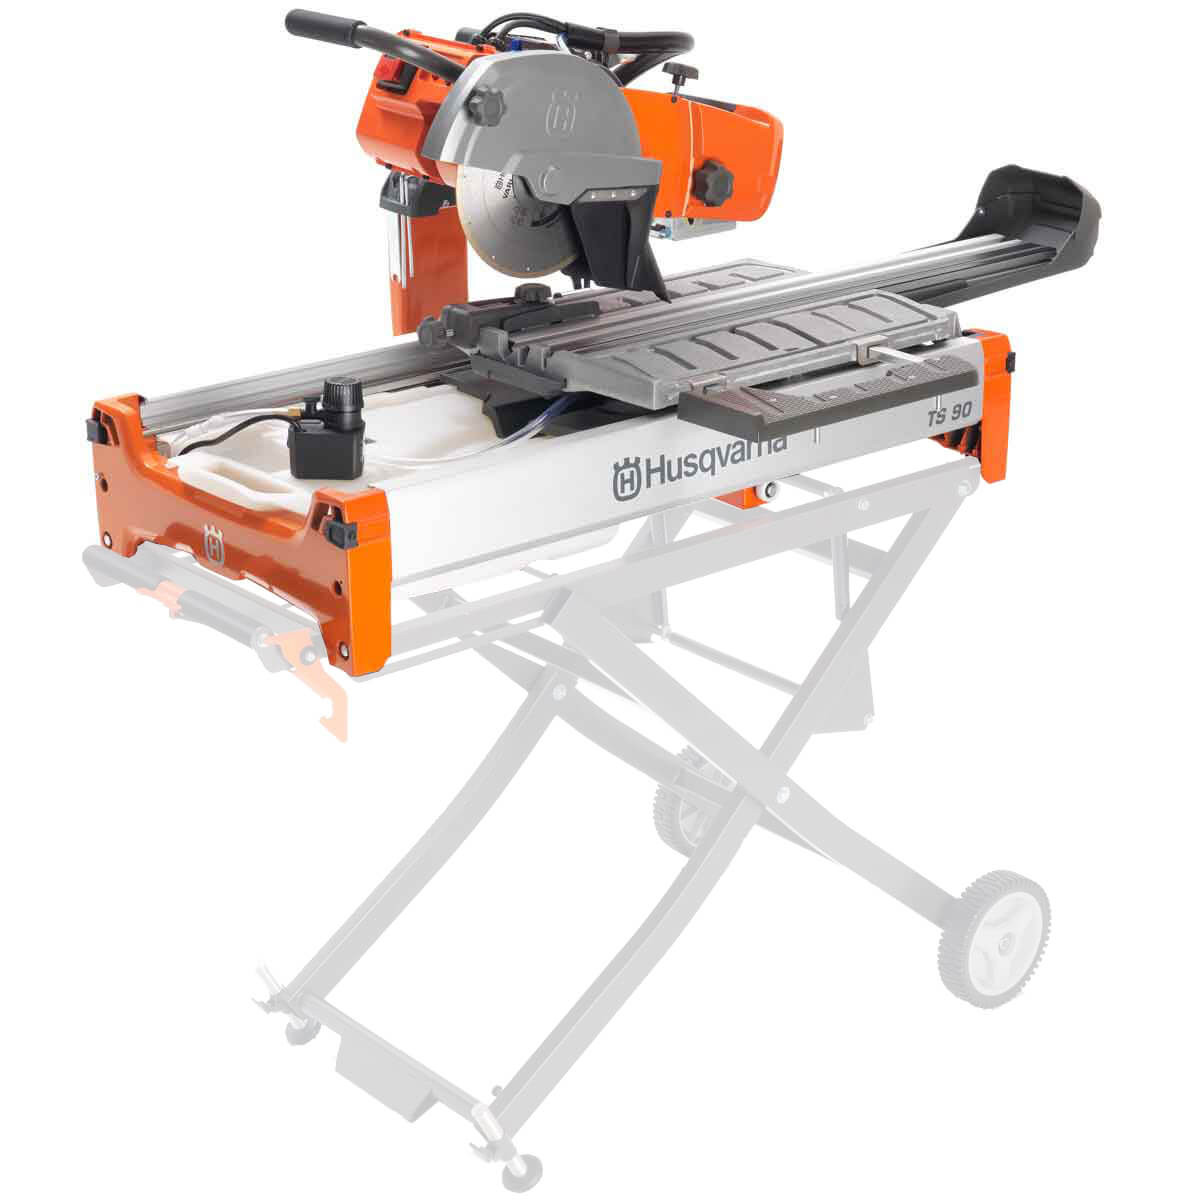 Husqvarna TS 90 Wet Tile Saw 2